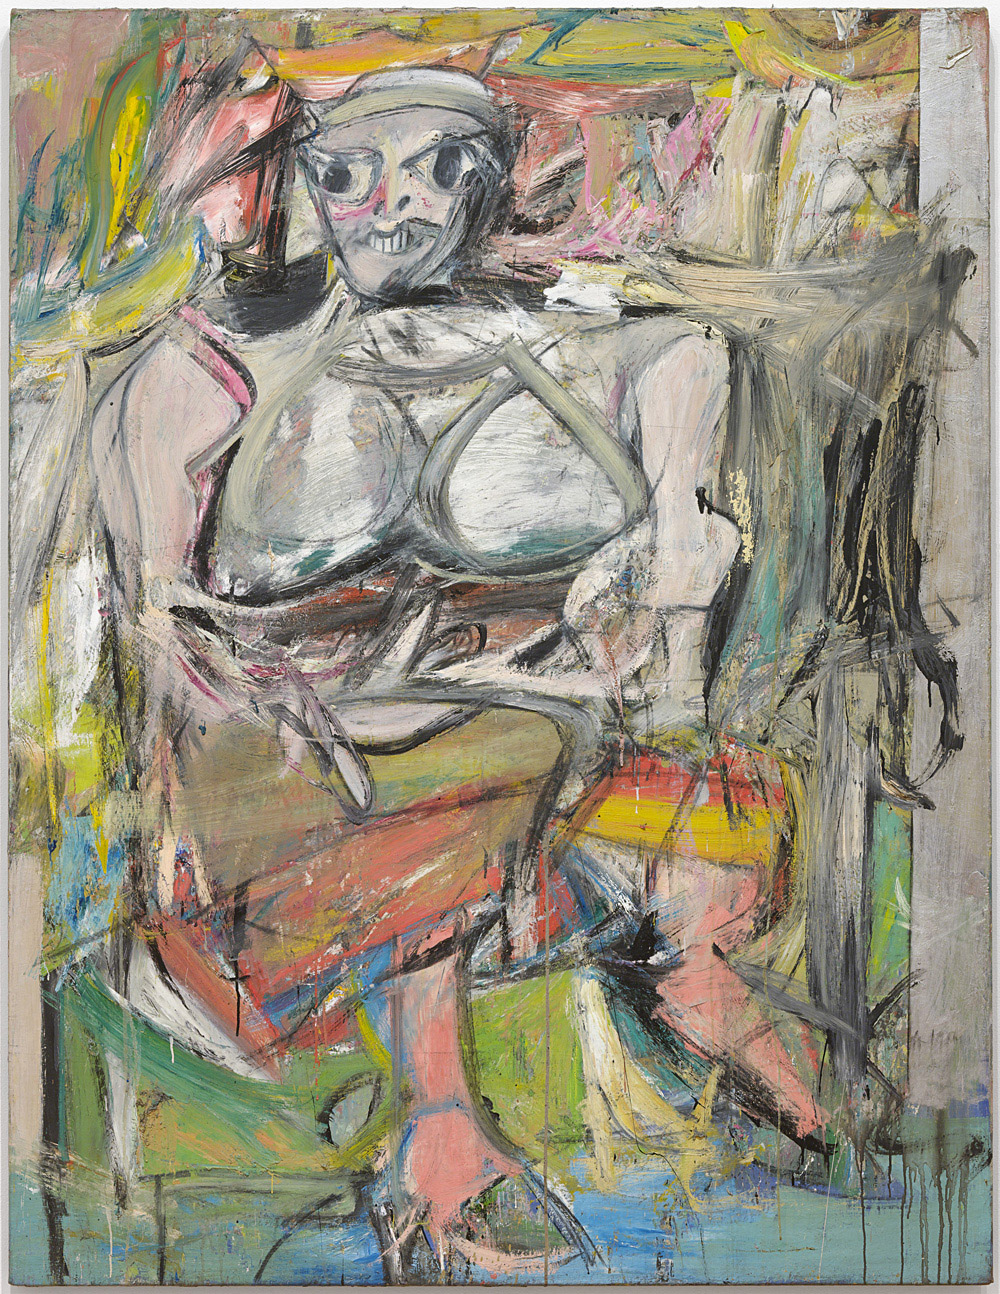 "Willem de Kooning (American, born the Netherlands. 1904-1997) Woman, I, 1950-52 Oil, enamel and charcoal on canvas 6' 3 7/8"" x 58"" (192.7 x 147.3 cm) The Museum of Modern Art, New York. Purchase. © 2011 The Willem de Kooning Foundation / Artists Rights Society (ARS), New York"